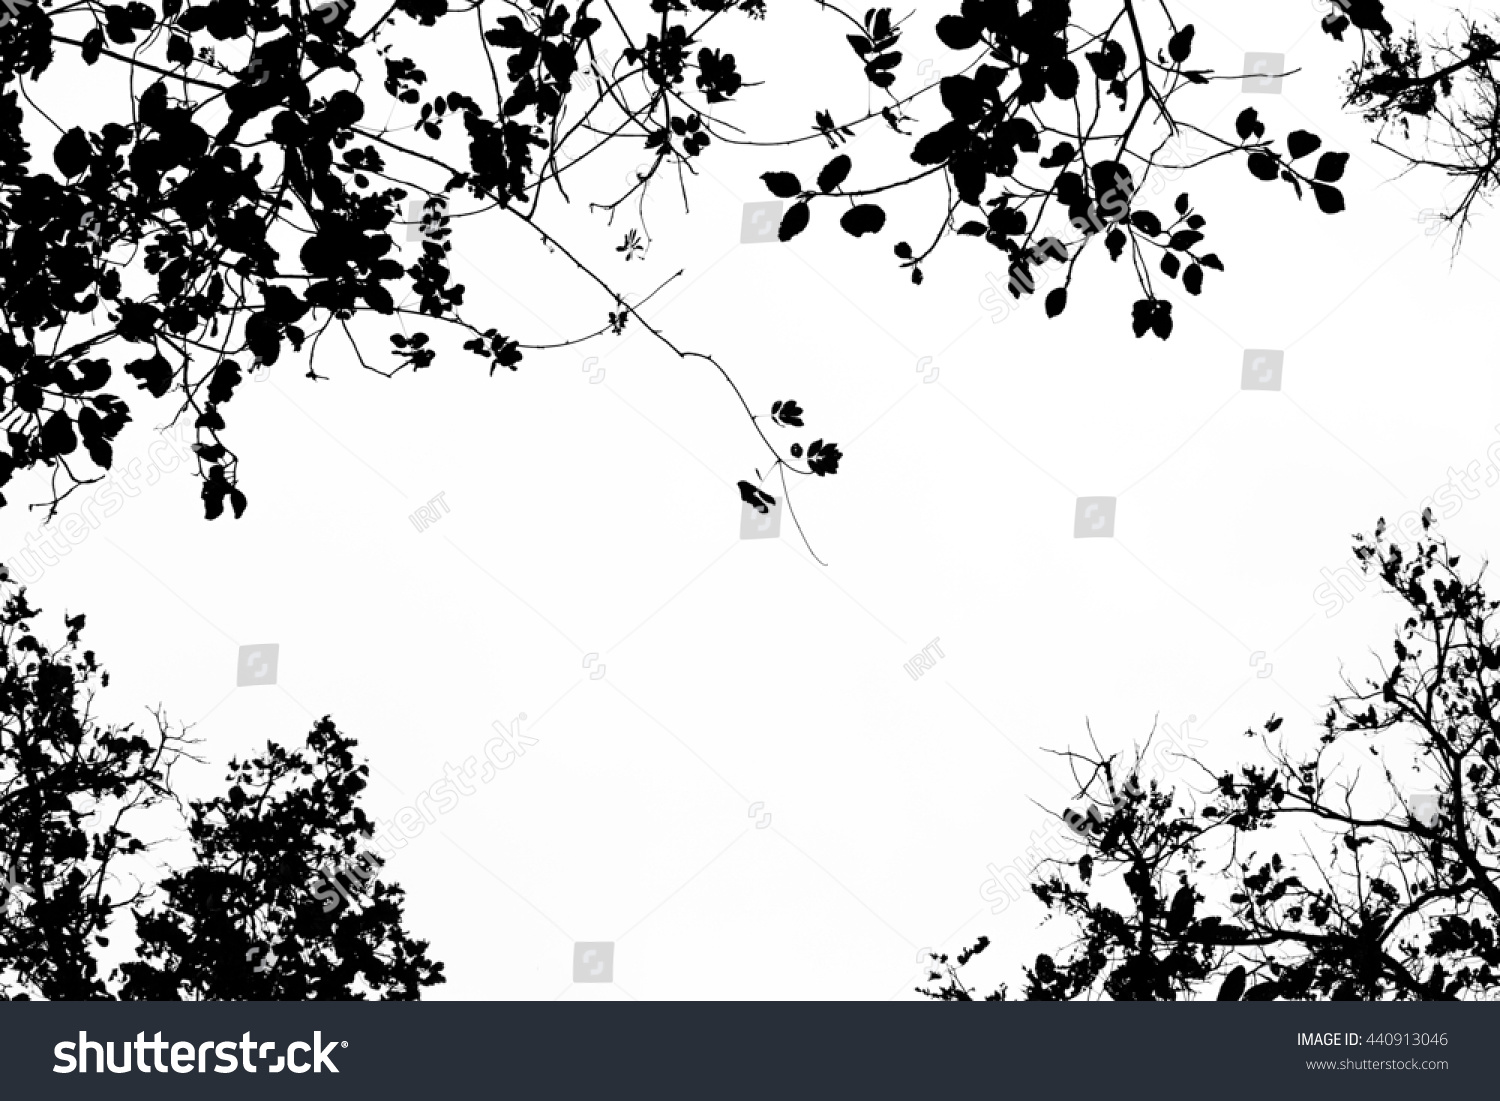 royaltyfree tree branch and leaves silhouette� 440913046